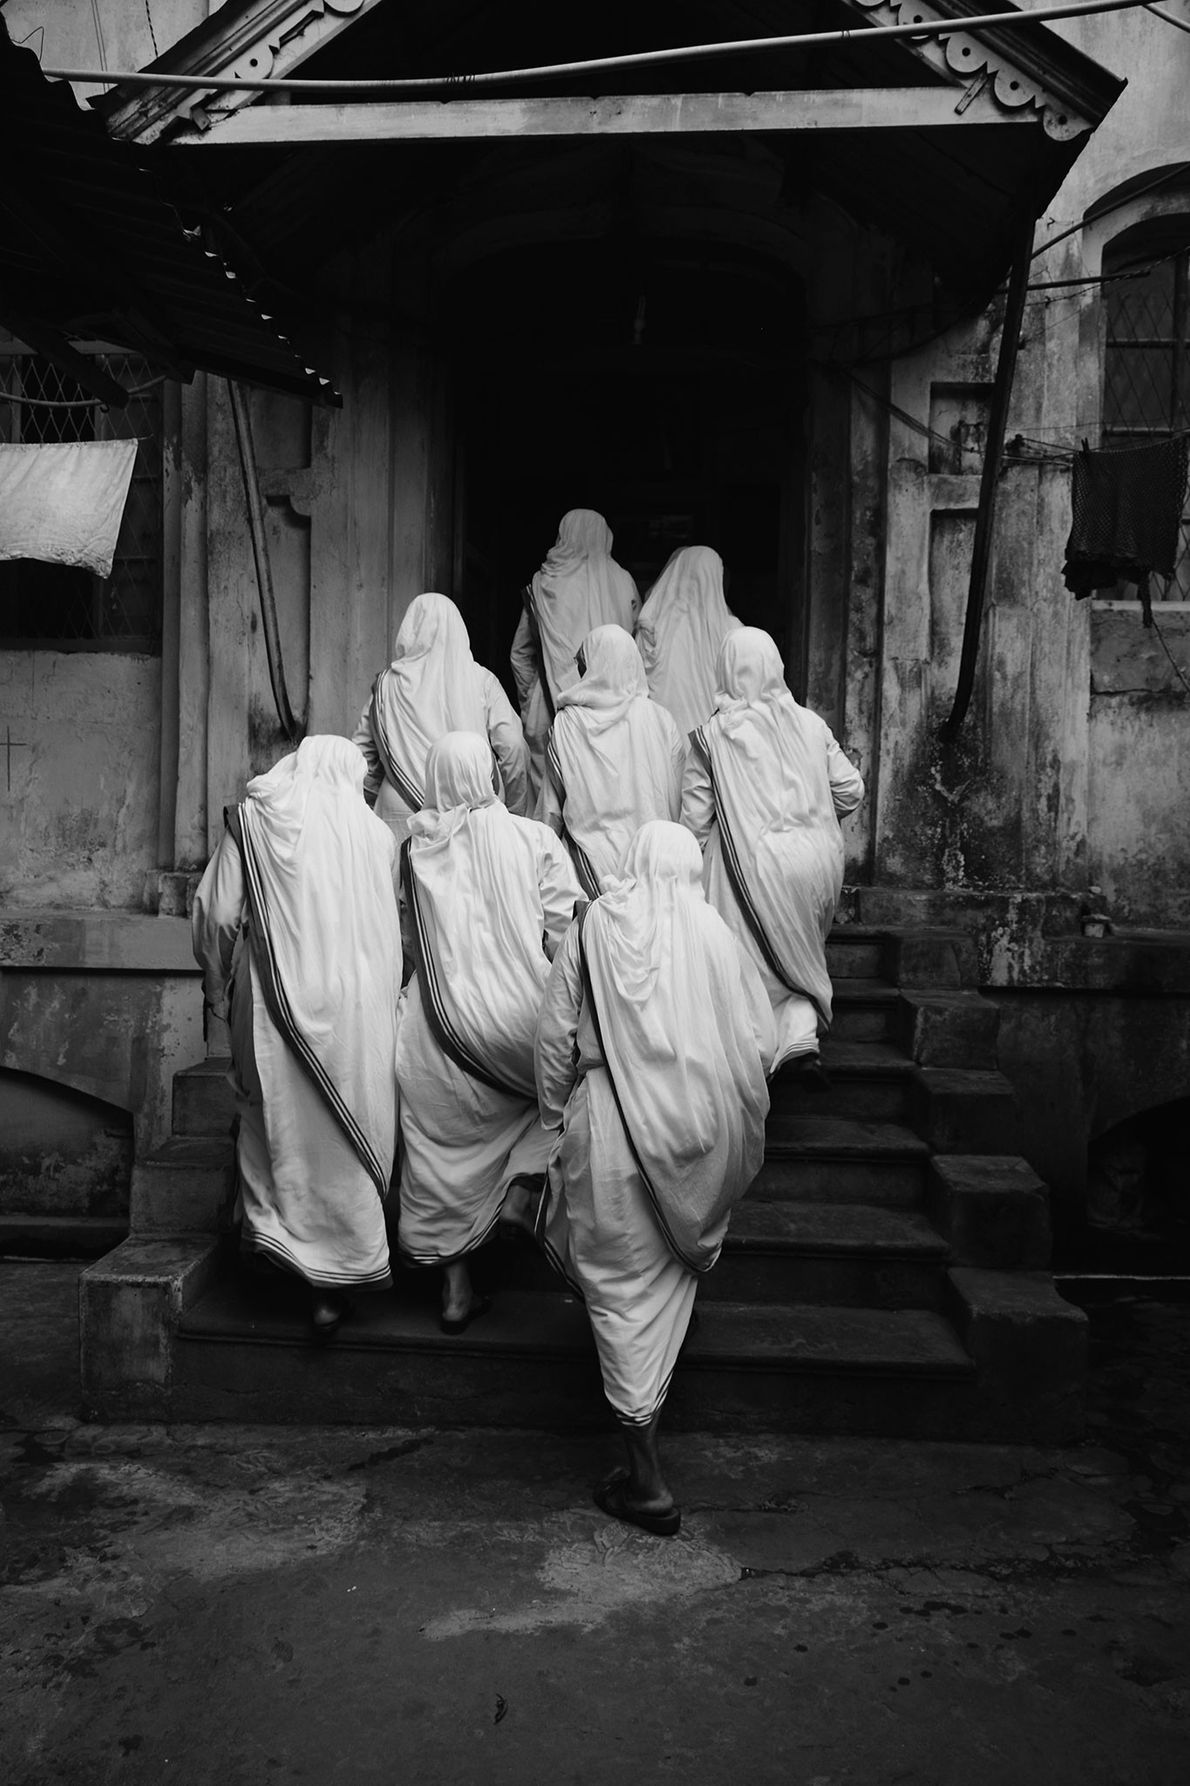 Kolkata, India  Amid its noise and choked traffic, India's second-largest city offers quiet reflection. These sisters are ...